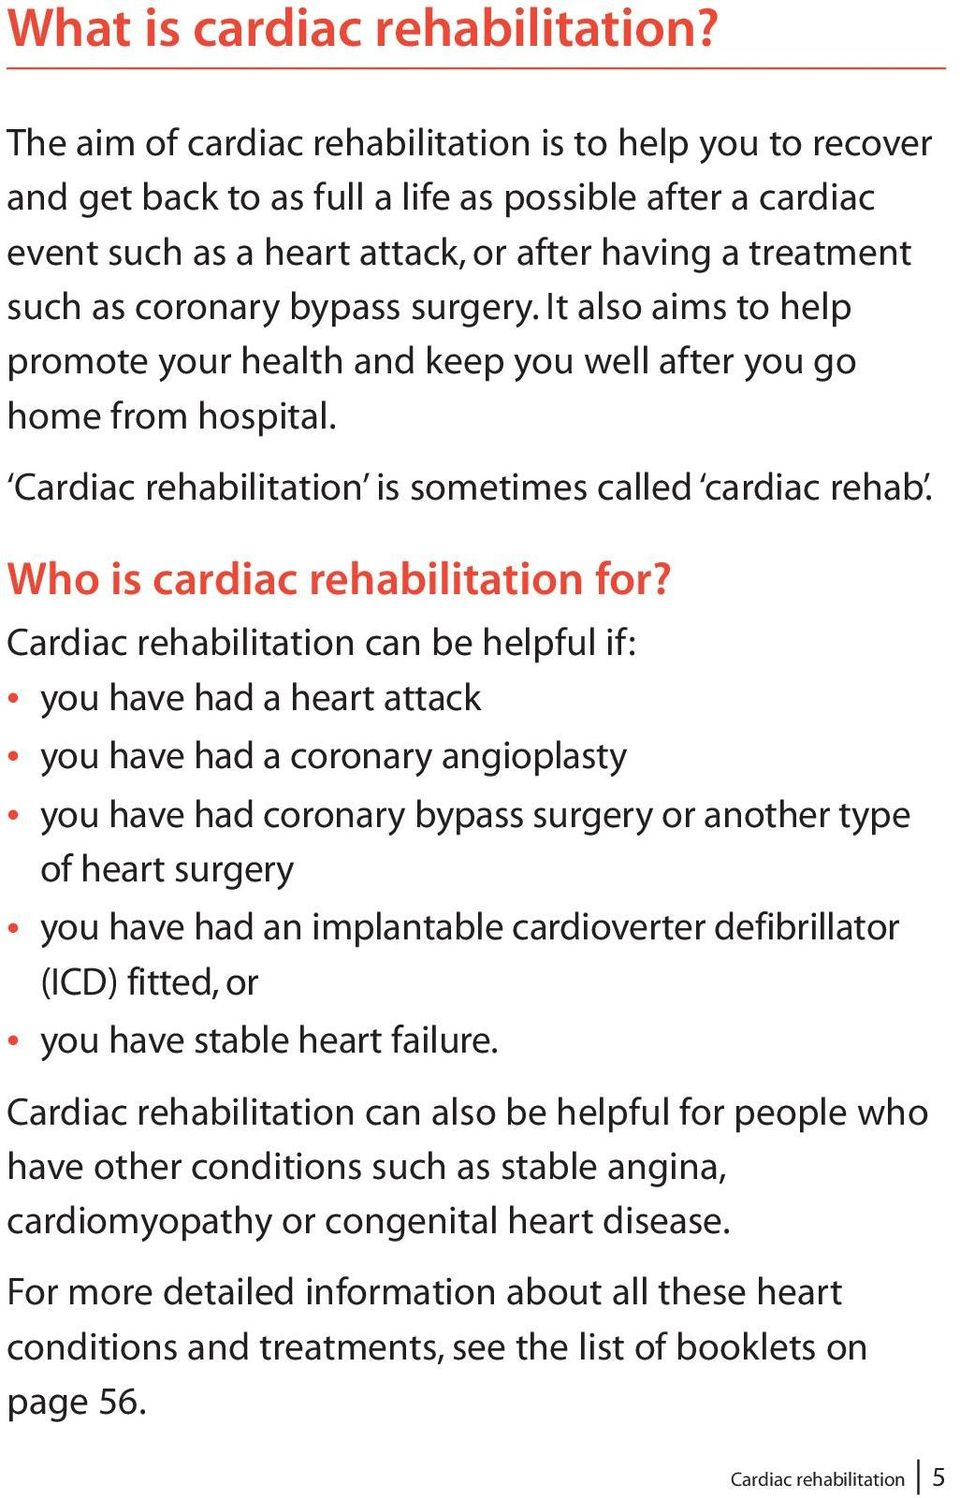 bypass surgery. It also aims to help promote your health and keep you well after you go home from hospital. Cardiac rehabilitation is sometimes called cardiac rehab. Who is cardiac rehabilitation for?